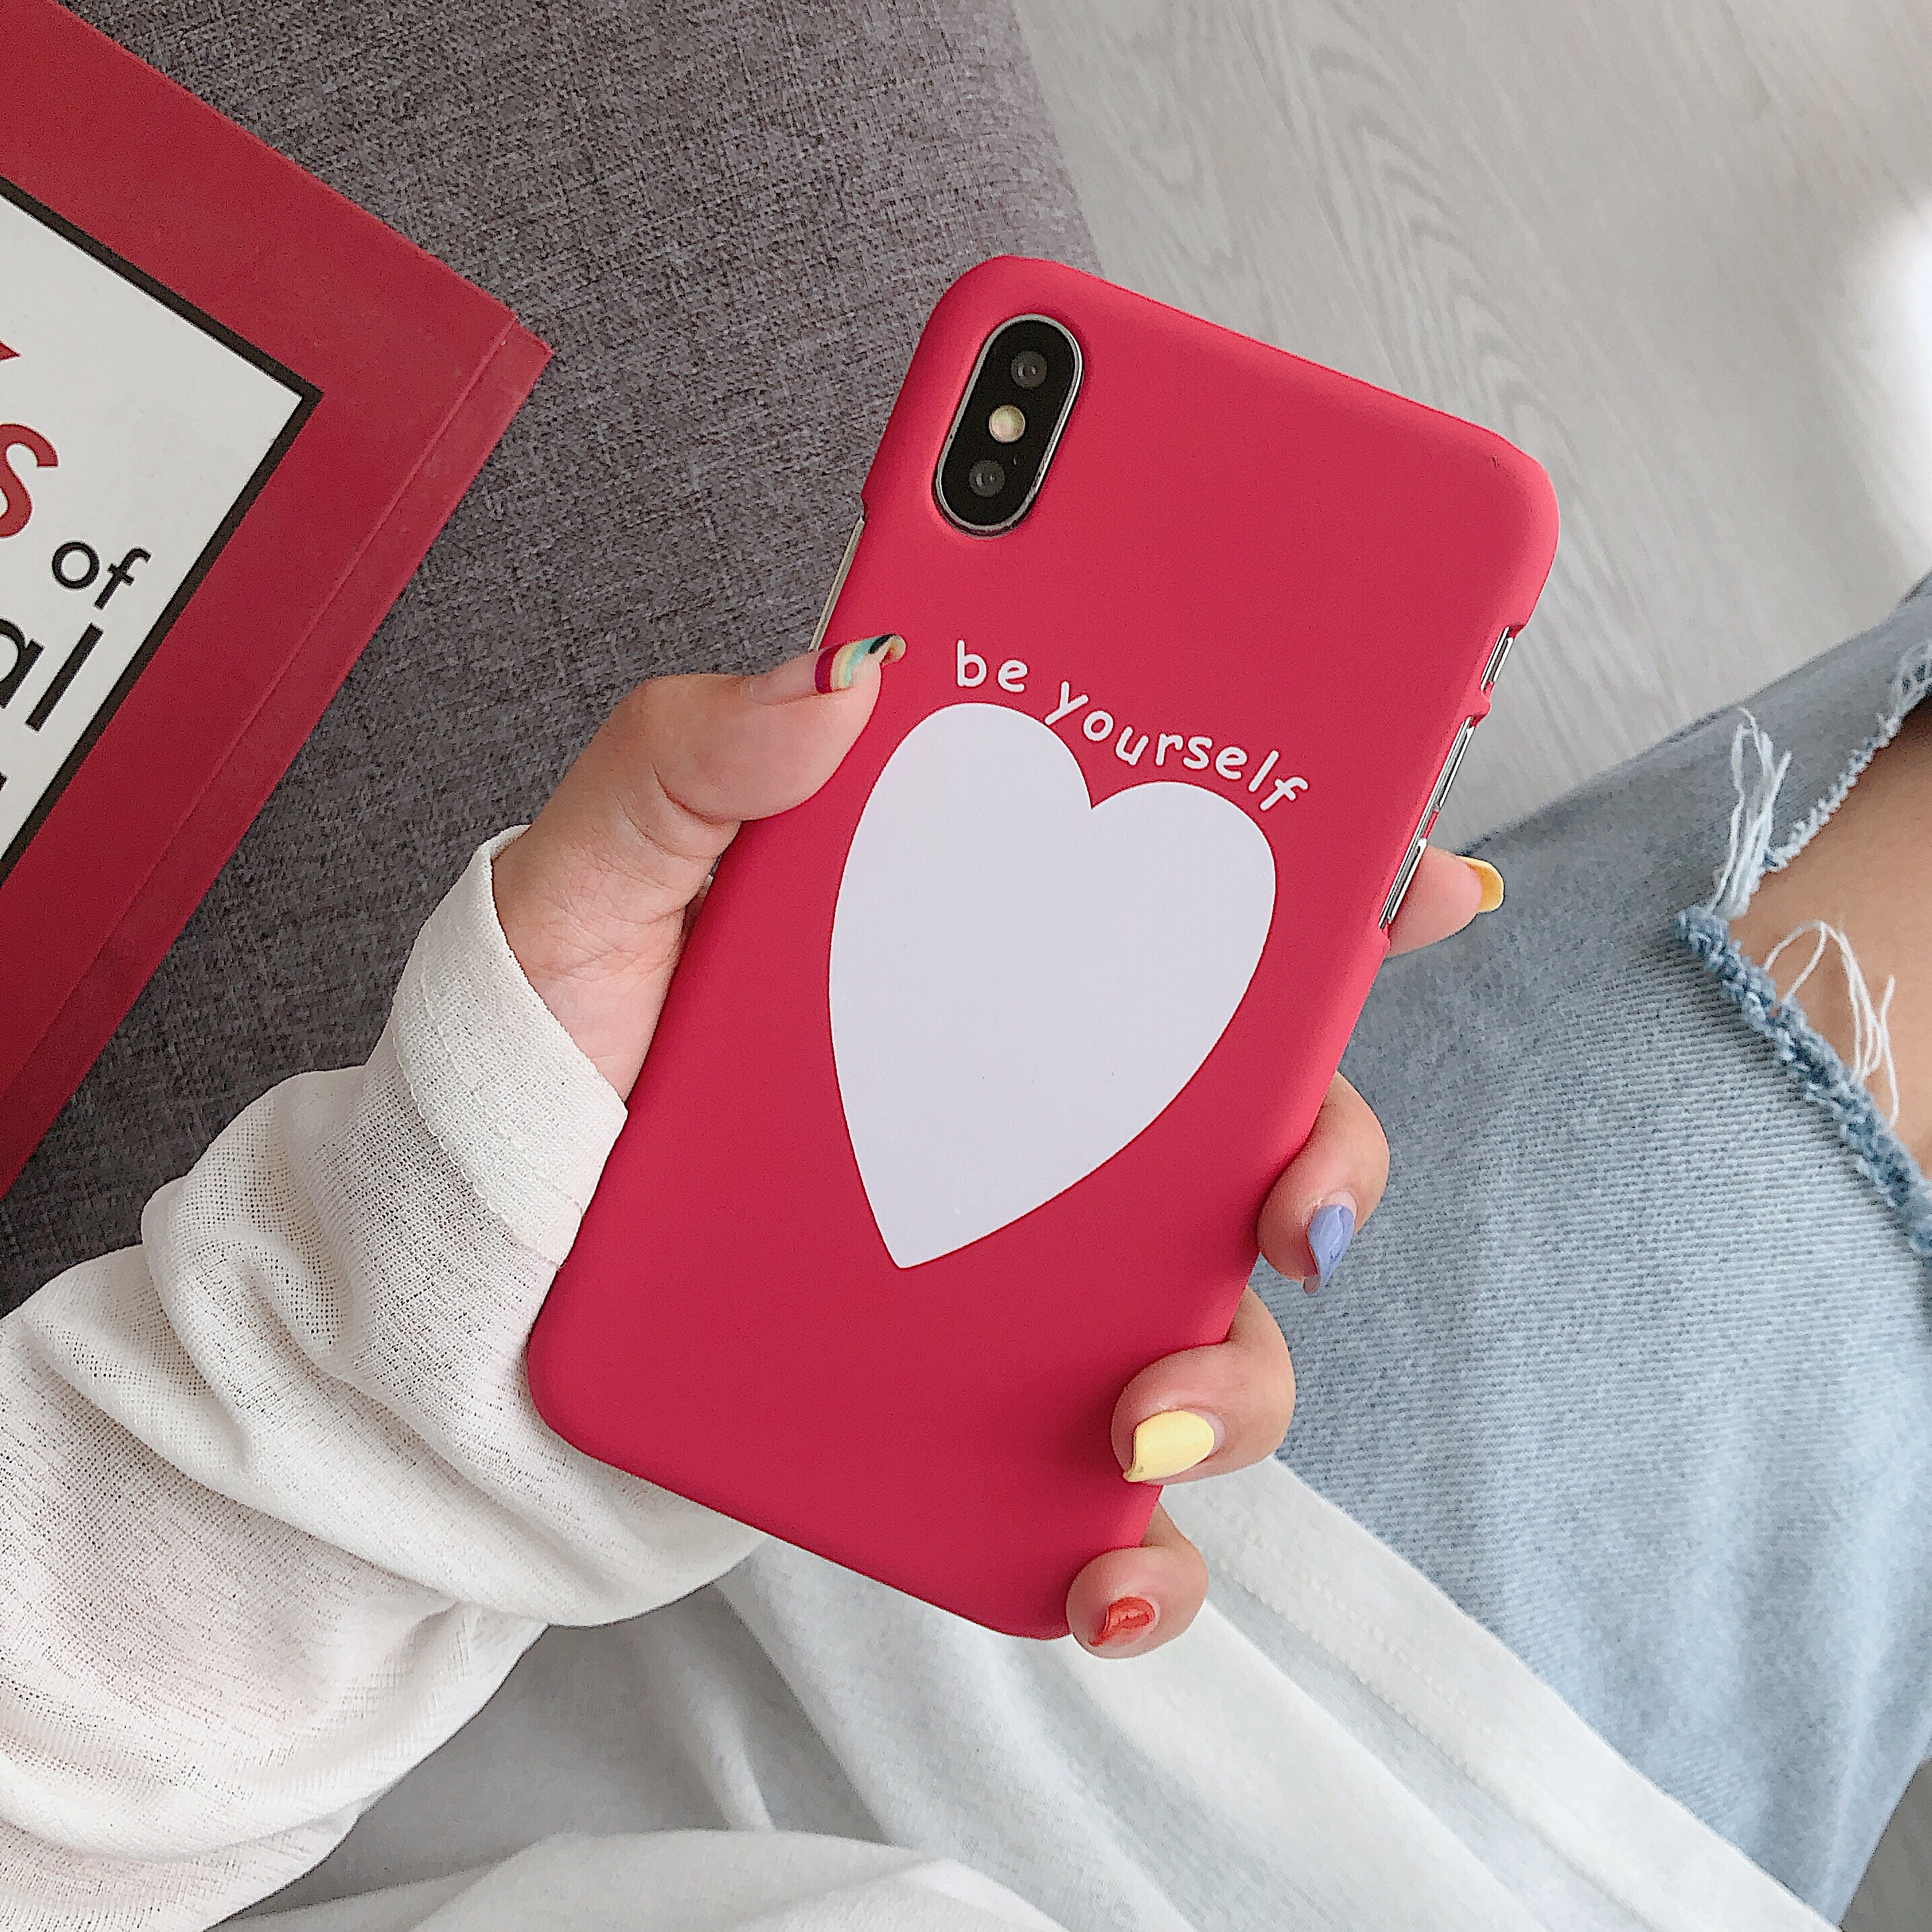 Image 3 - Phone Bag Case Accessories For iPhone X XR XS MAX 6 6s 7 8Plus Luxury Couple Love Heart Eyes Print Fashion Back Cover Capa Coque-in Half-wrapped Cases from Cellphones & Telecommunications